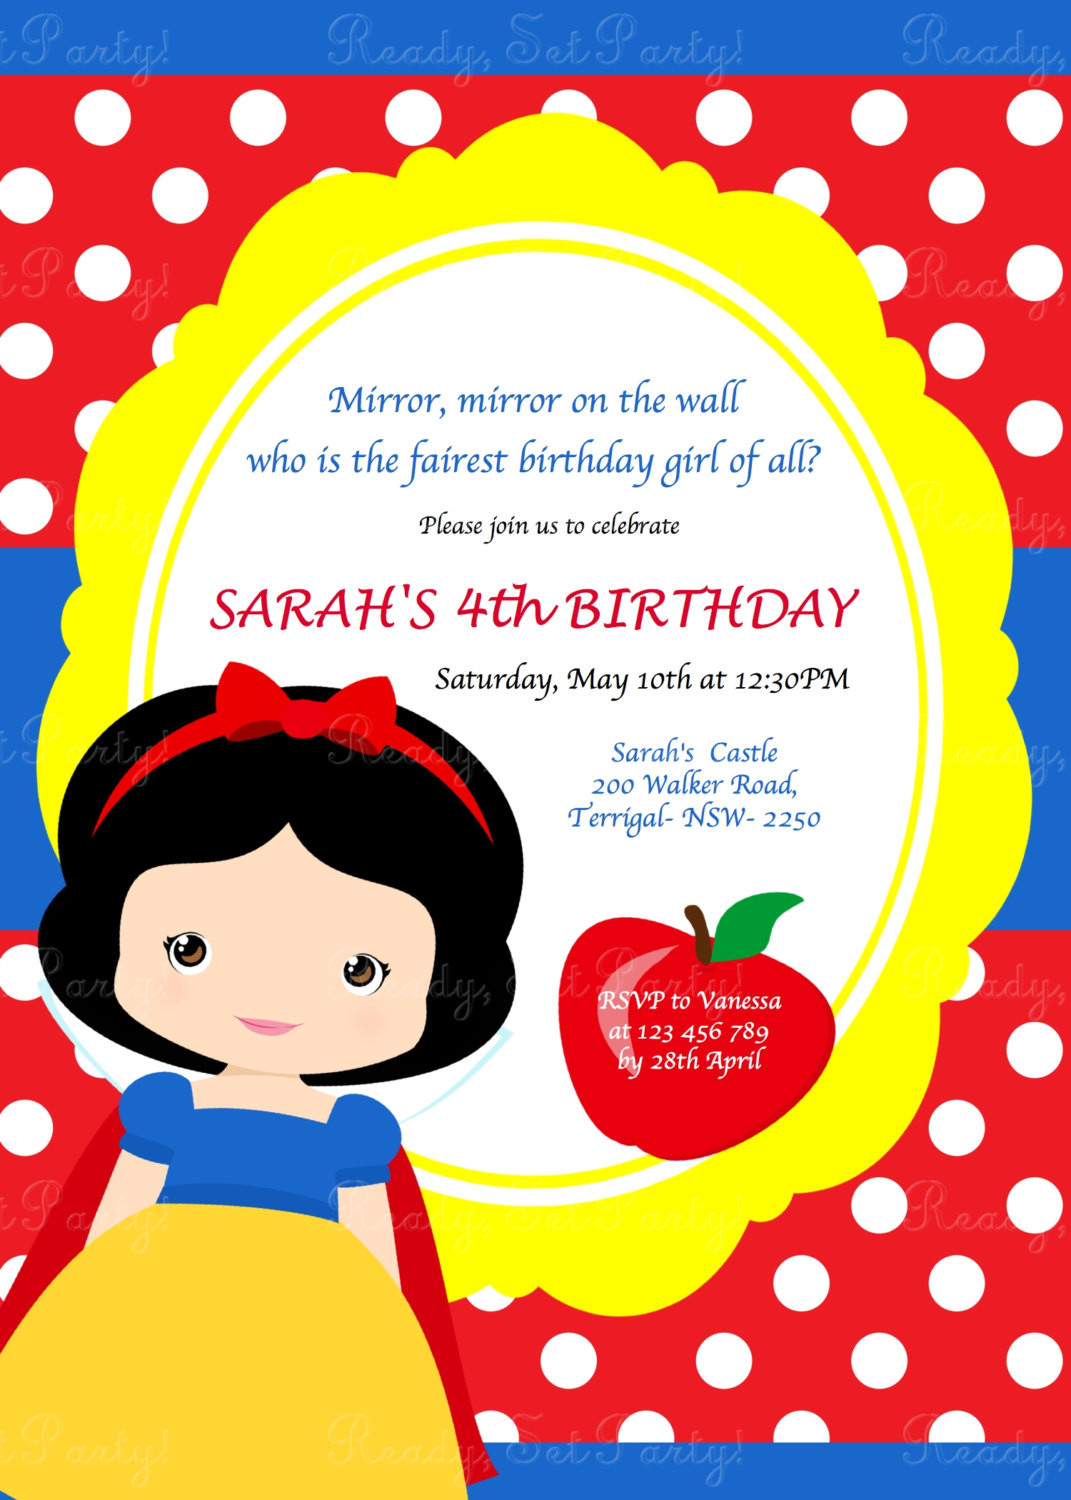 Best ideas about Snow White Birthday Invitations . Save or Pin Snow White Birthday Party Invitation by Love this Moment Now.